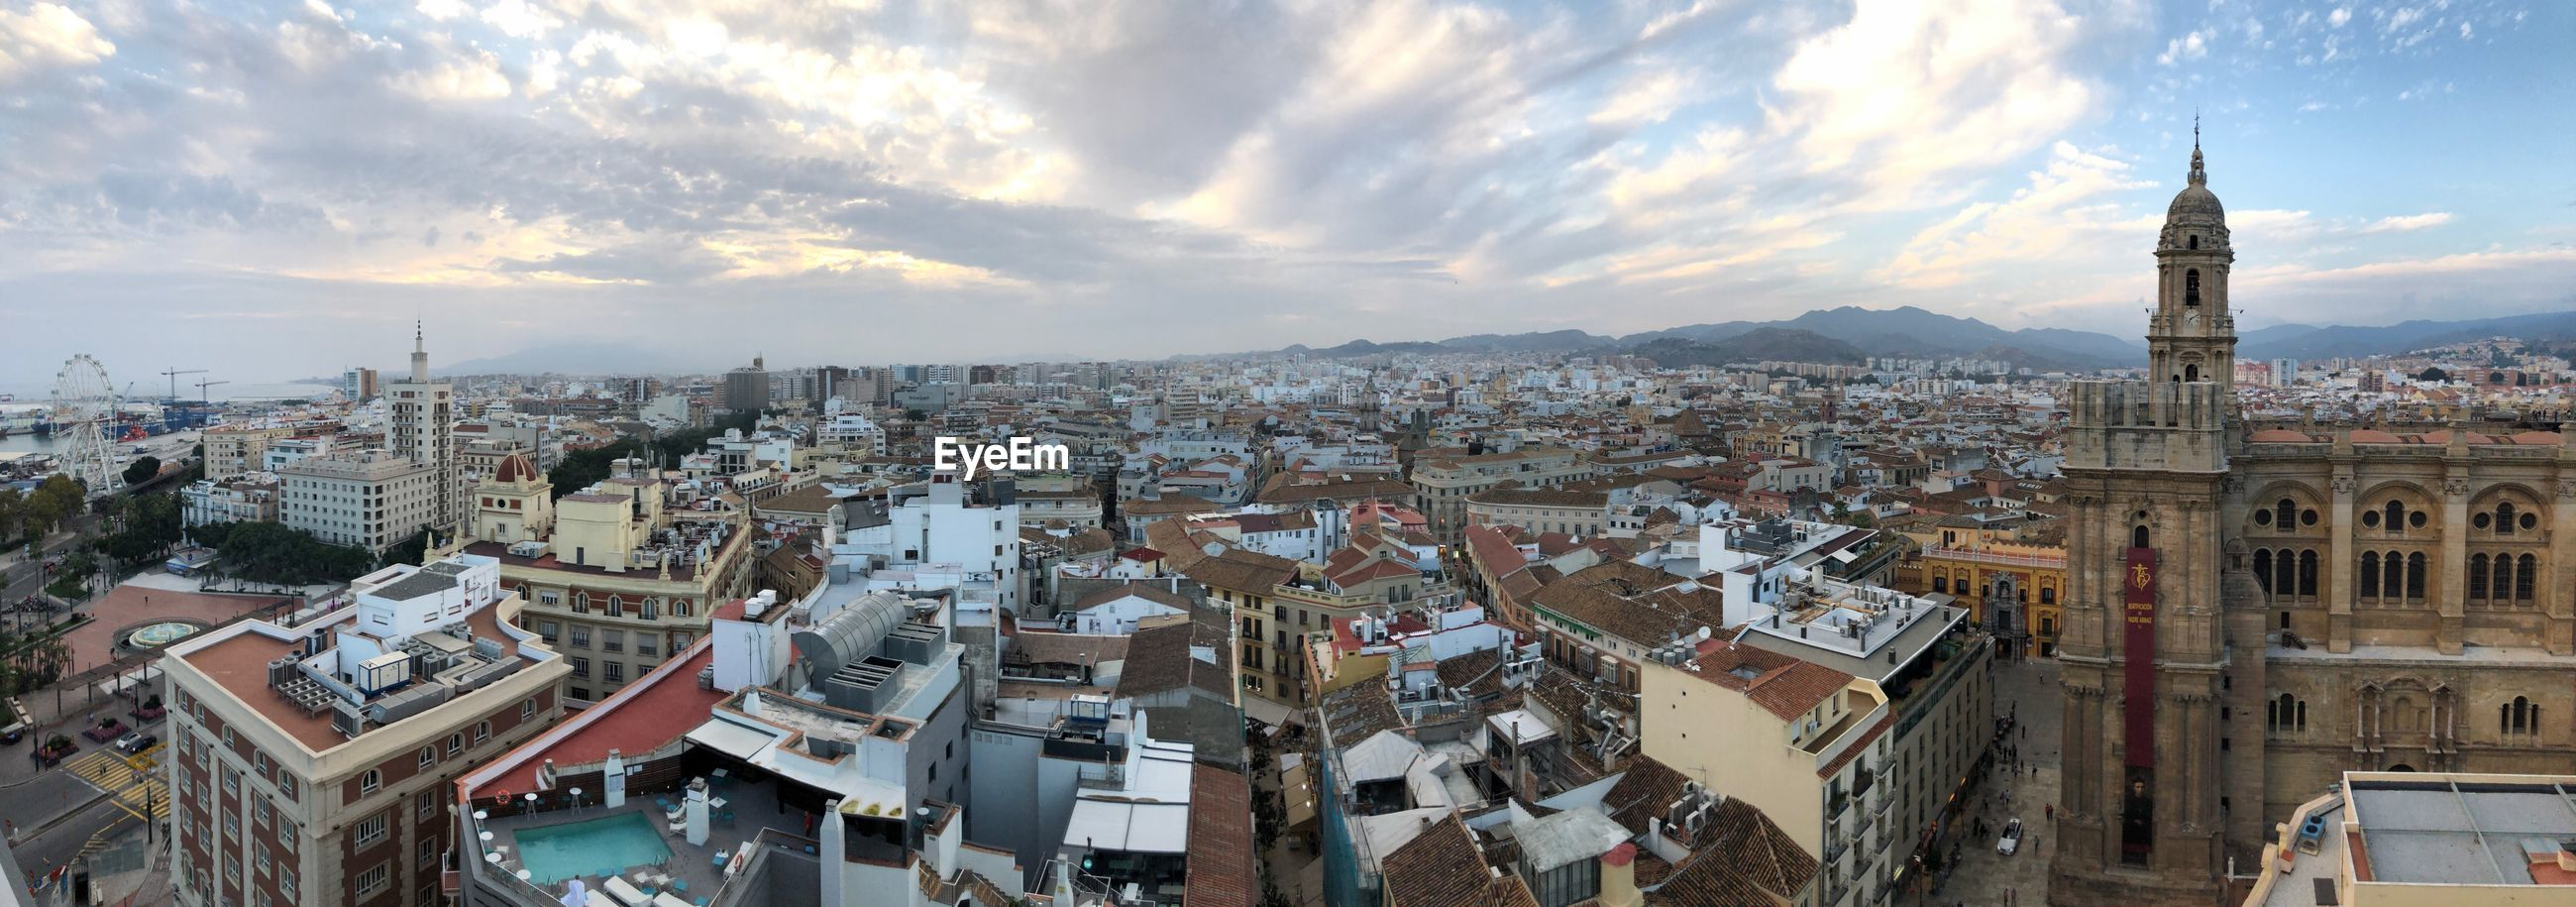 High angle view of buildings in city against cloudy sky in malaga